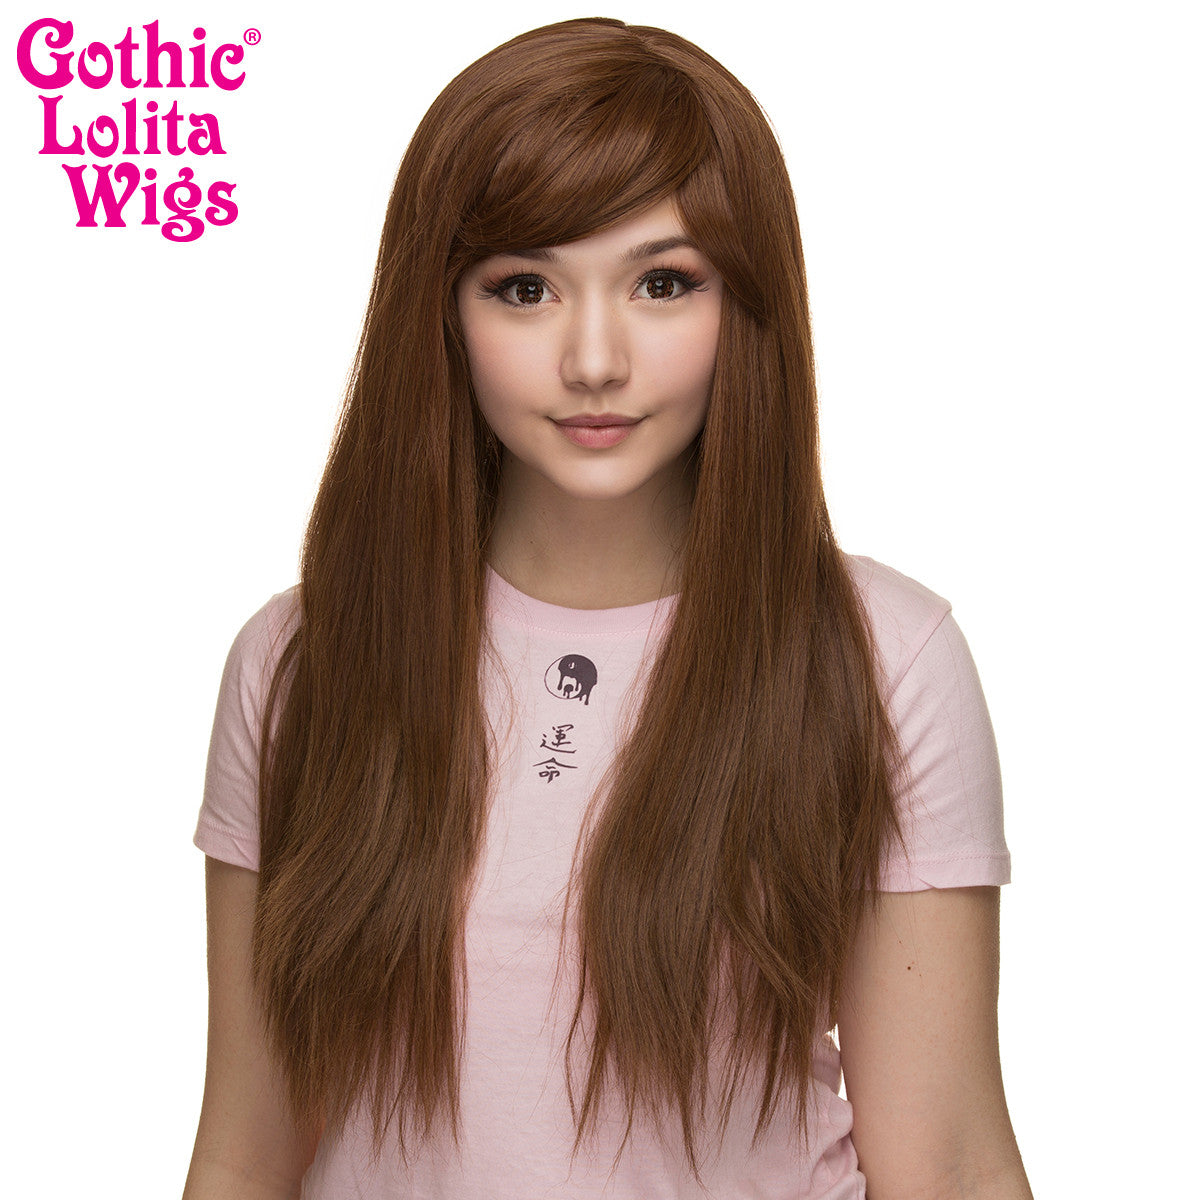 Gothic Lolita Wigs®  Bella™ Collection - Golden Chestnut Brown Mix -00424